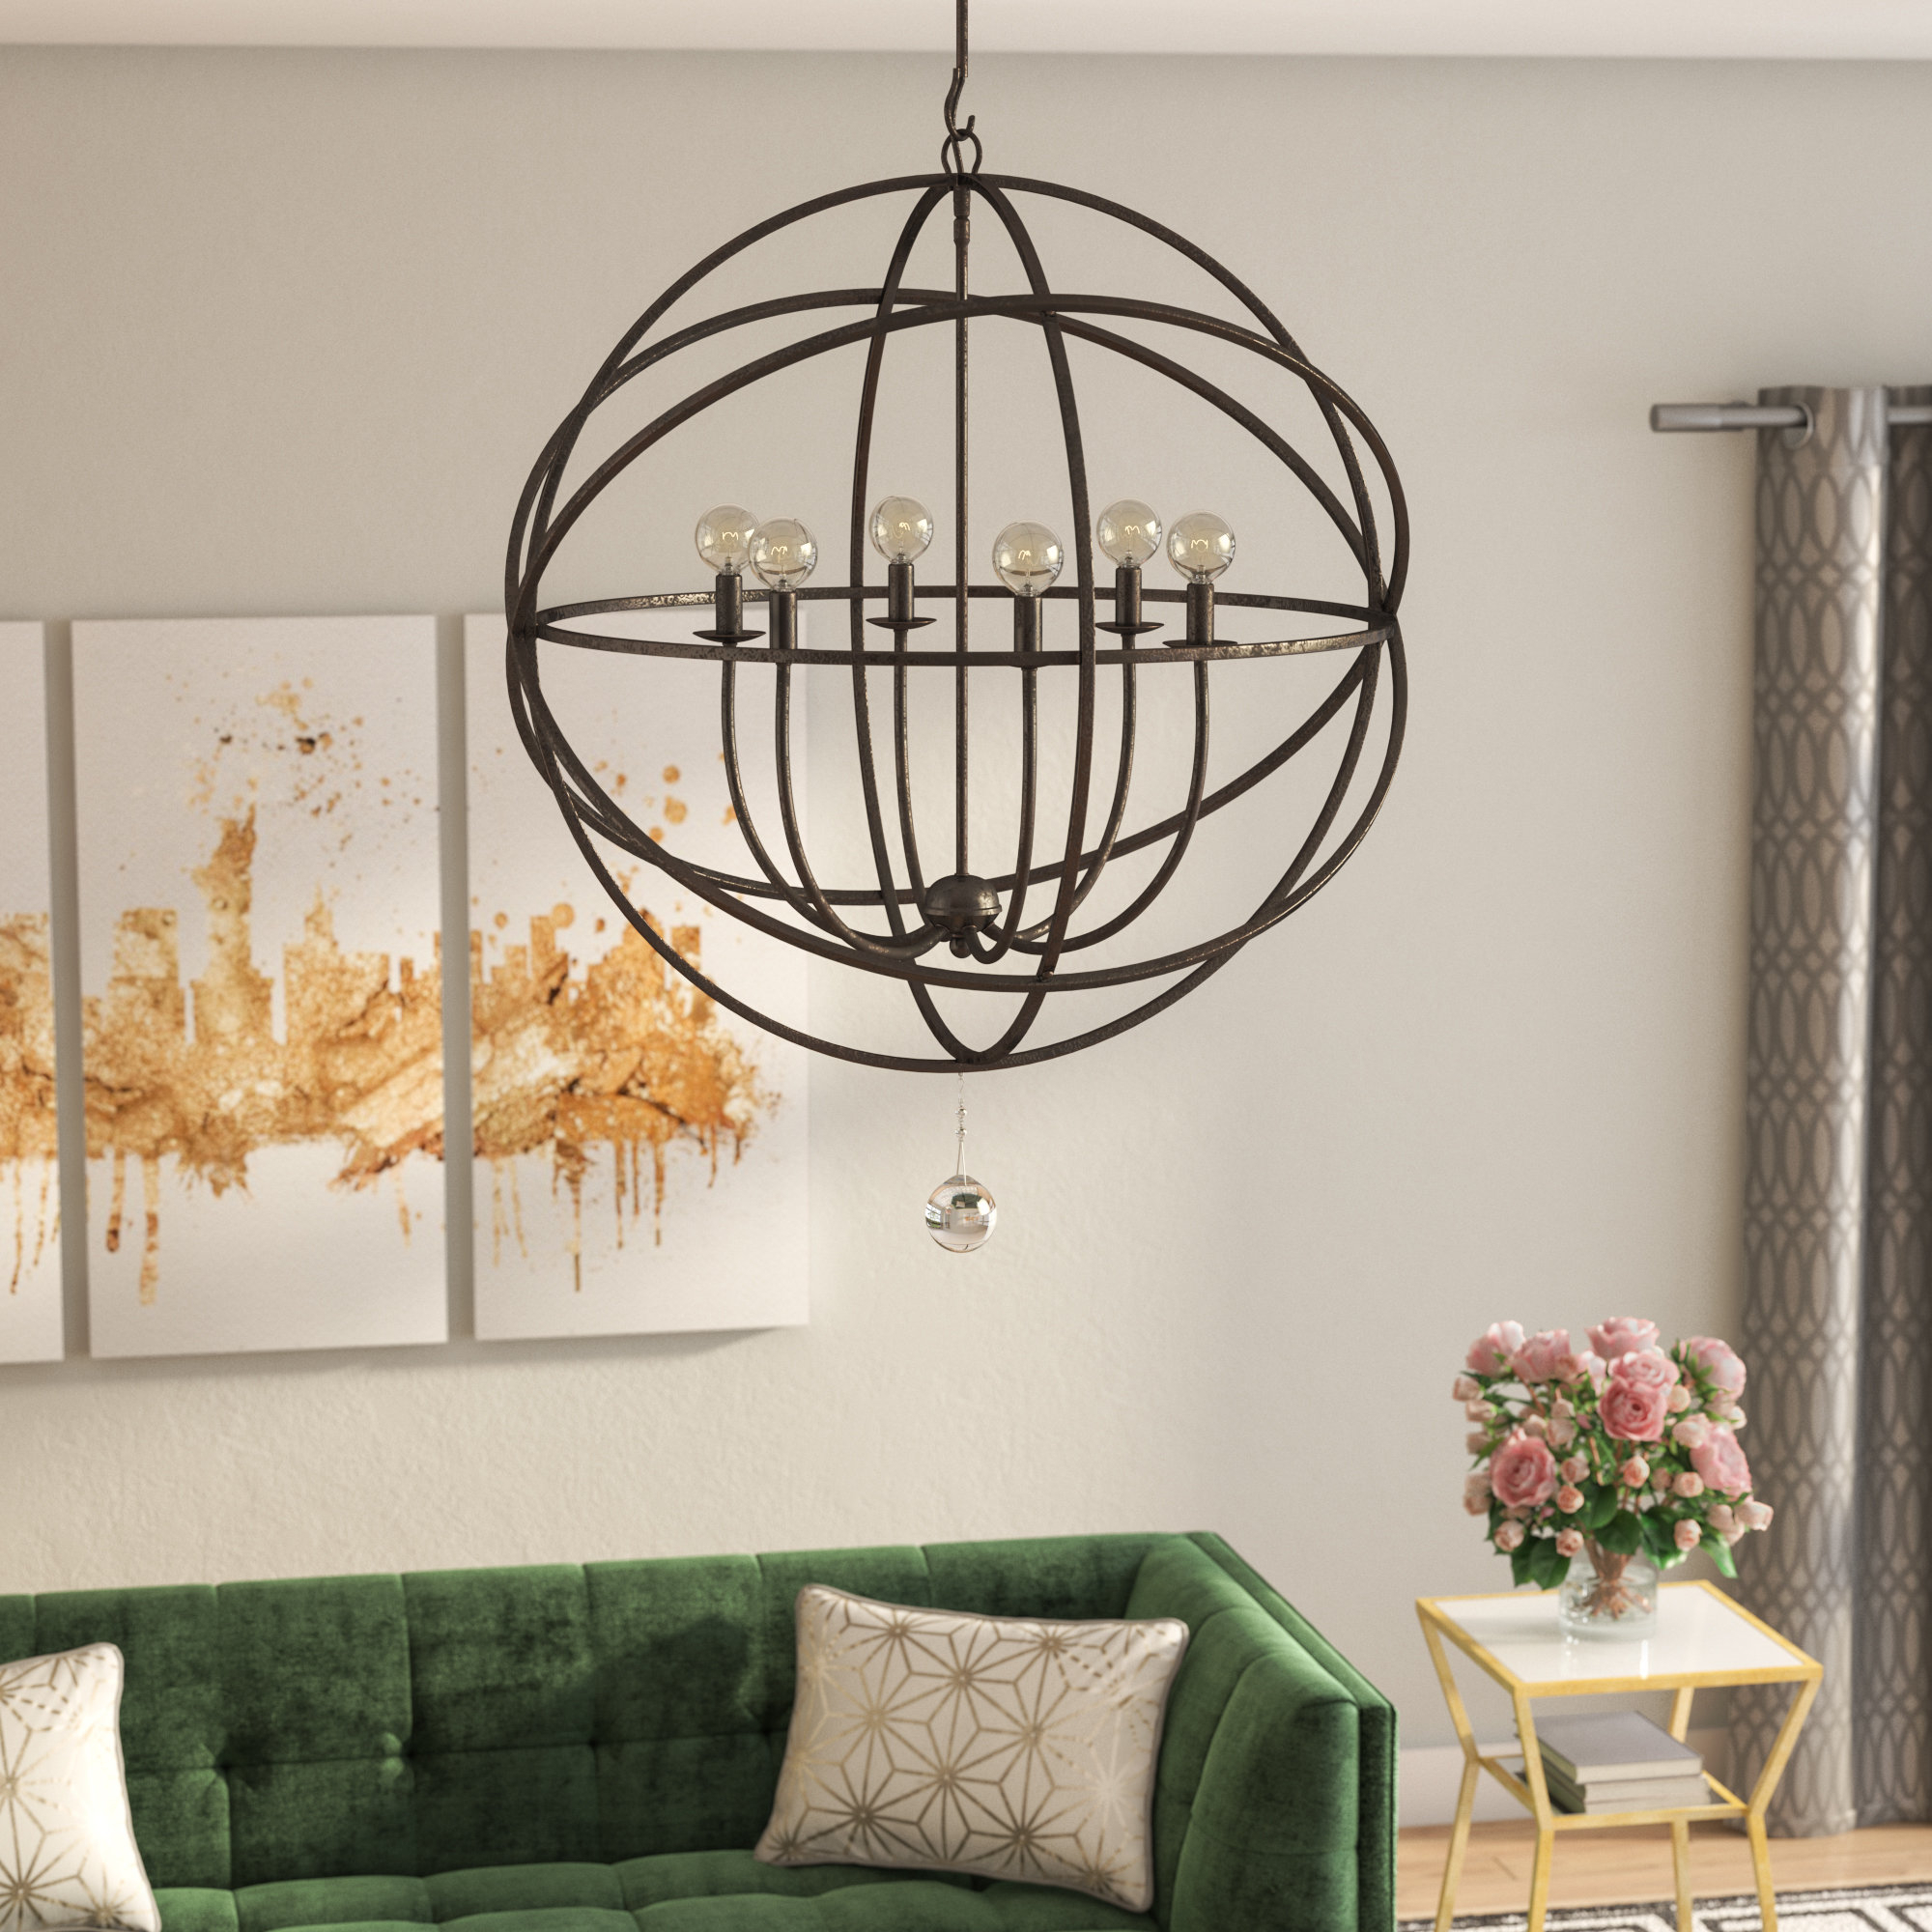 Gregoire 6 Light Globe Chandeliers Regarding 2019 Gregoire 6 Light Globe Chandelier (View 8 of 20)